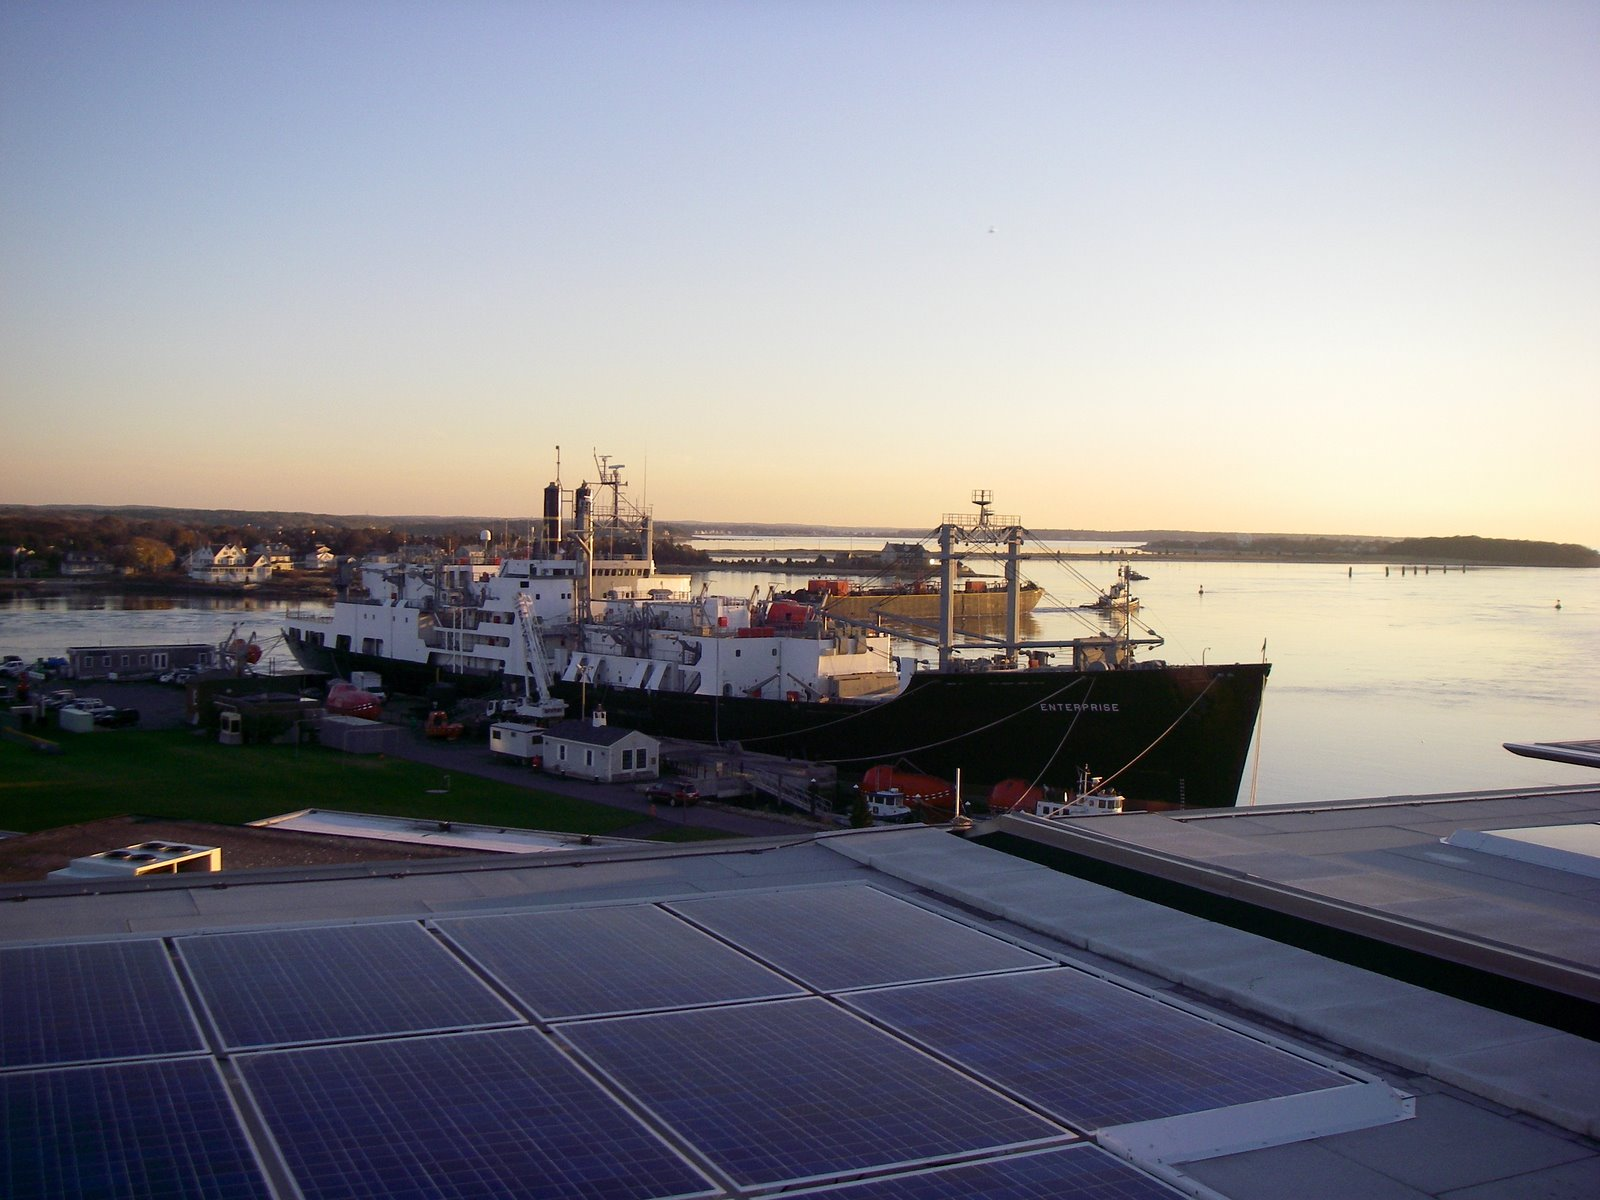 Solar panels at Mass Maritime